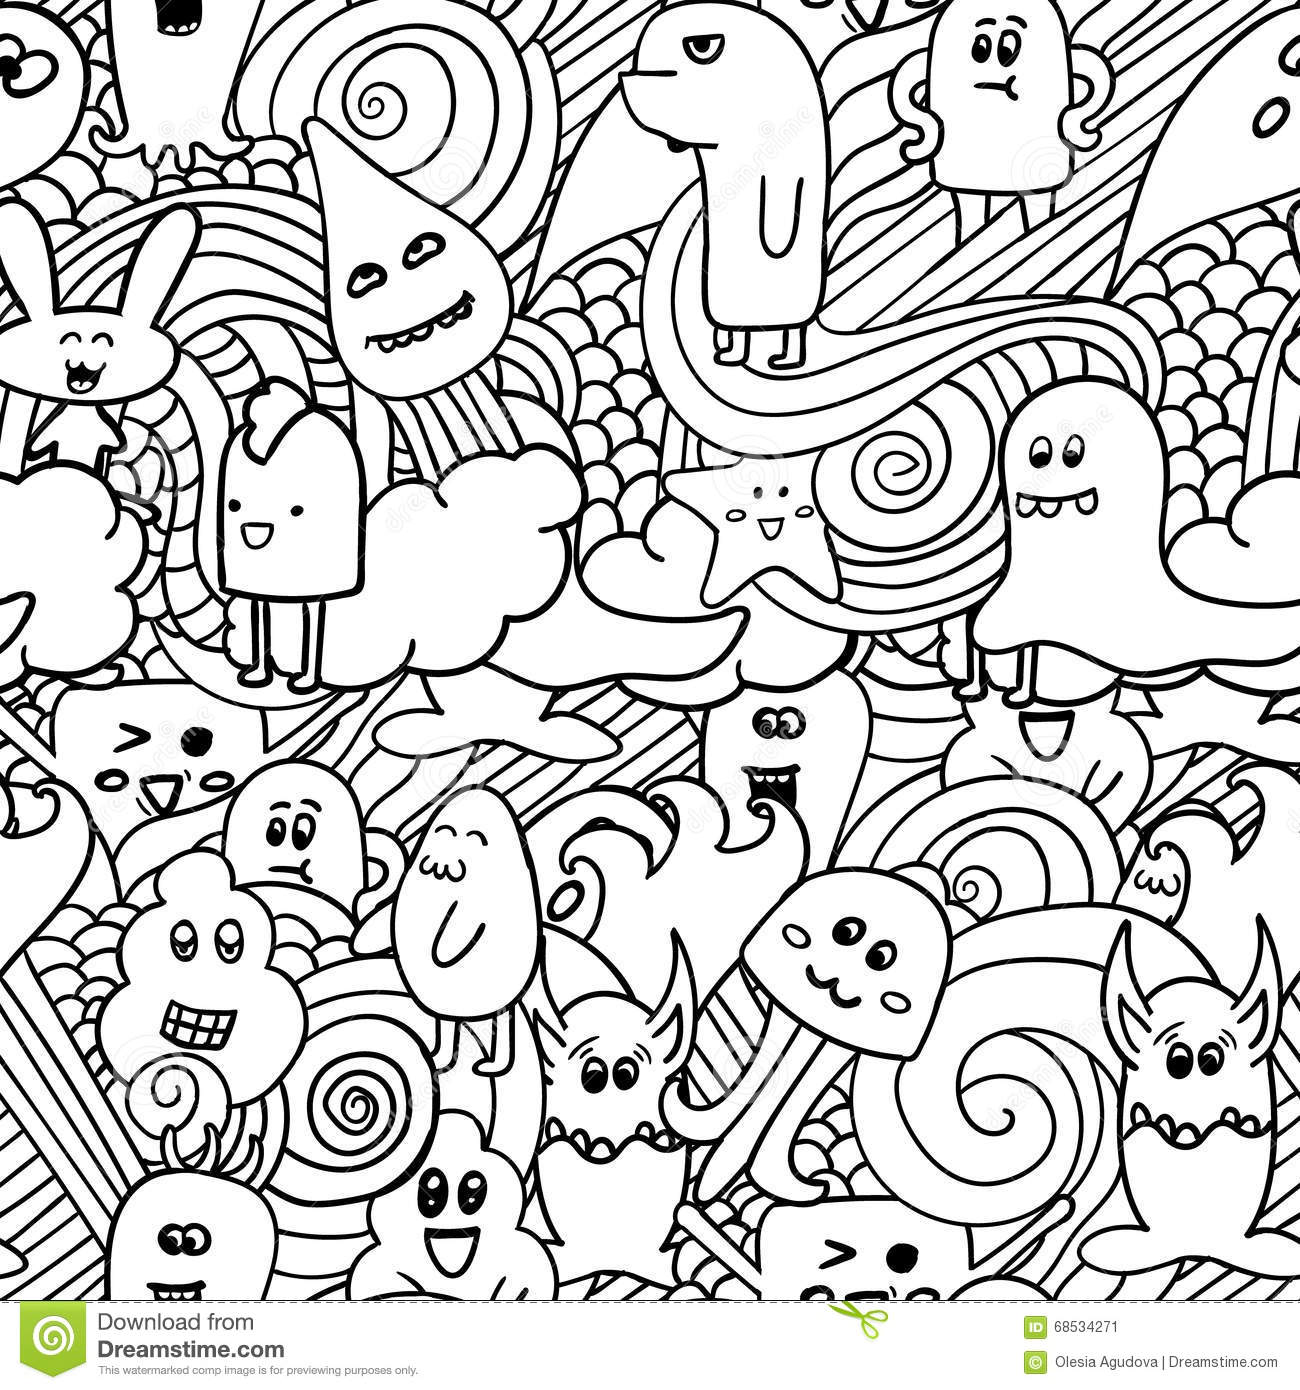 Stock Illustration Doodle Vector Seamless Pattern Monsters Funny Monsters Graffiti Can Be Used Backgrounds T Shirts Image68534271 on cake illustration